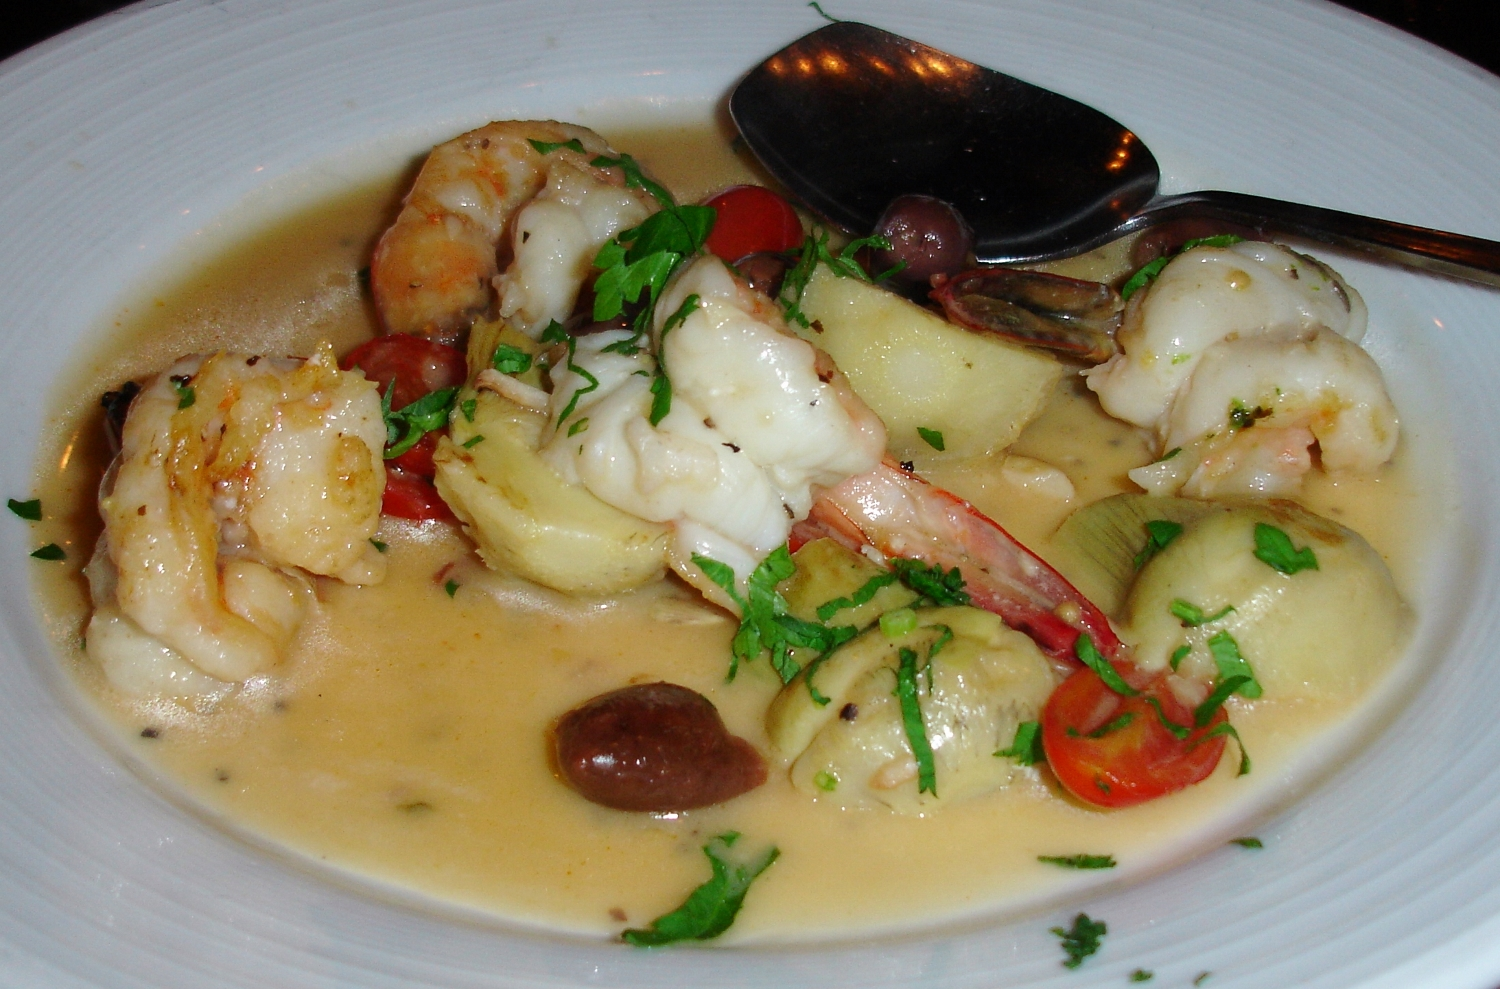 A shrimp appetizer special featured shrimp cooked not a moment too long, with tomatoes, pungent olives, and plenty of butter sauce that we were told would be a little spicy. It was not, but we enjoyed cleaning the plate with bites of warm bread.